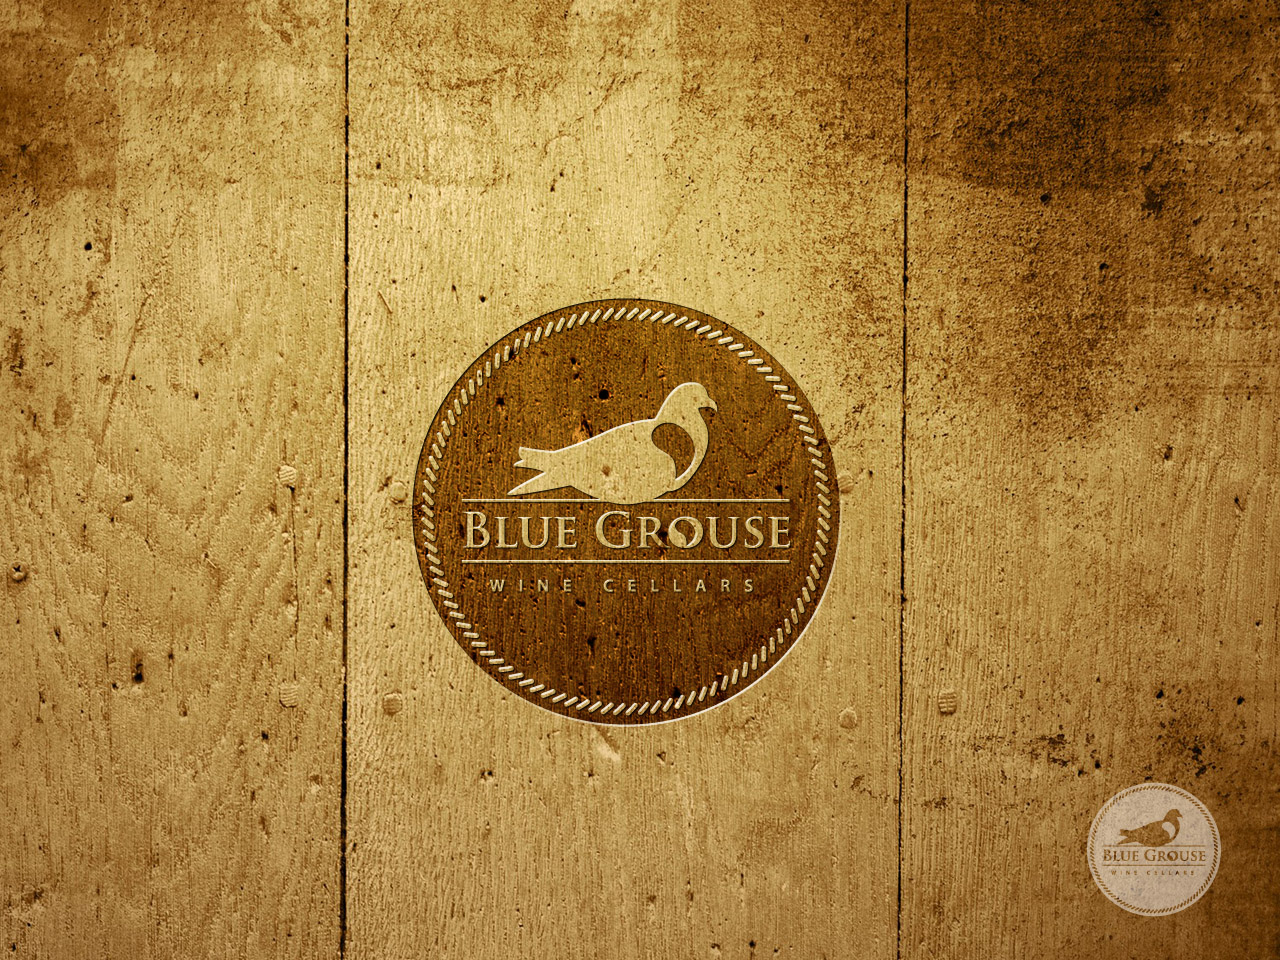 Logo Design by jpbituin - Entry No. 157 in the Logo Design Contest Creative Logo Design for Blue Grouse Wine Cellars.